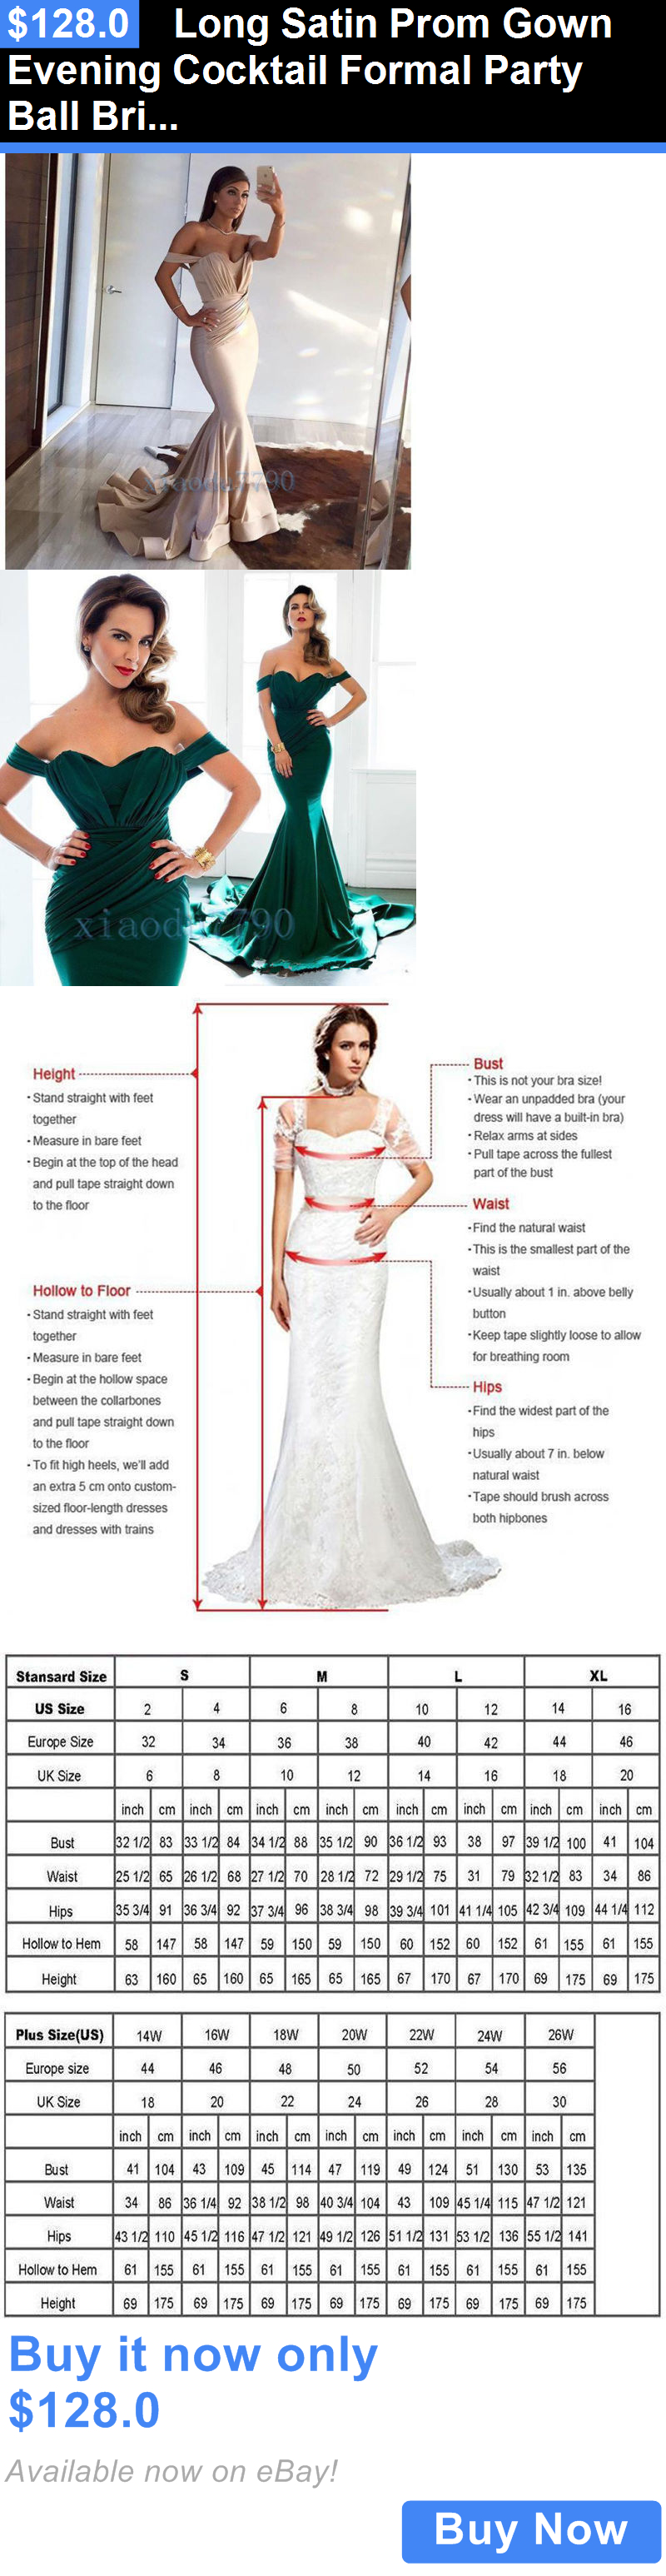 Prom and formal dresses long satin prom gown evening cocktail